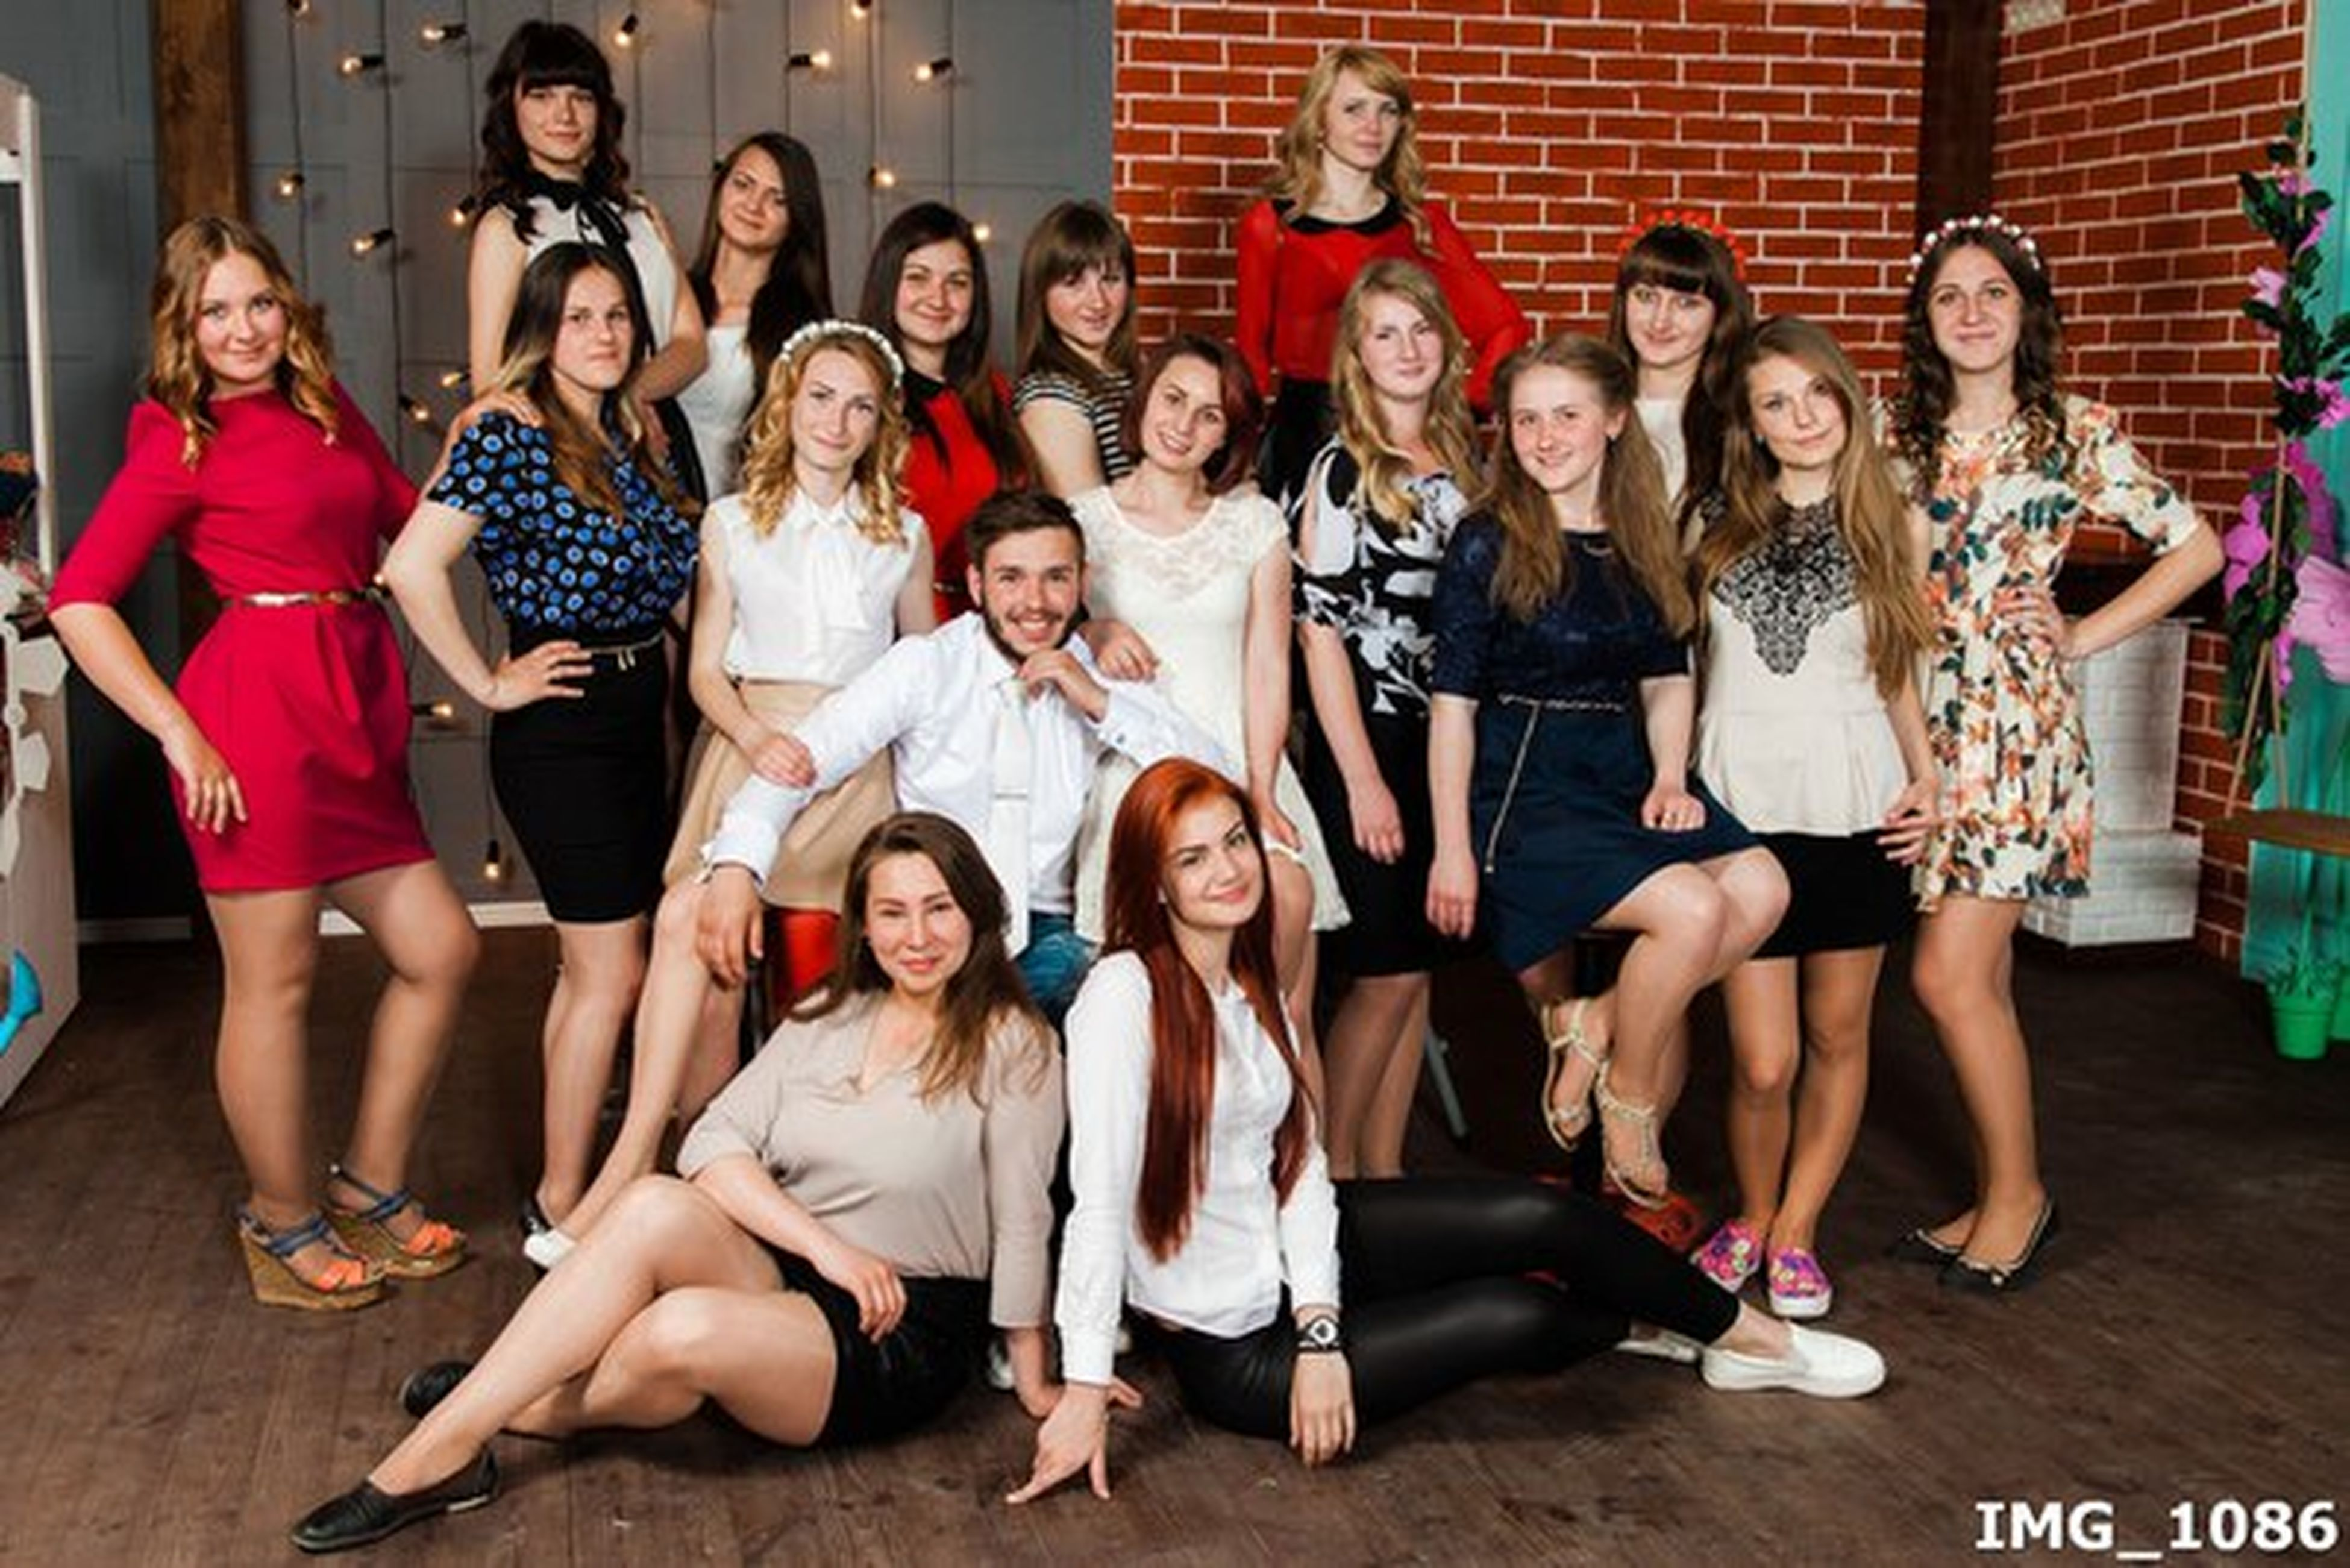 child, friendship, girls, portrait, full length, looking at camera, sitting, fun, teenager, lifestyles, people, pre-adolescent child, togetherness, large group of people, party - social event, childhood, cheerful, children only, females, smiling, student, indoors, adult